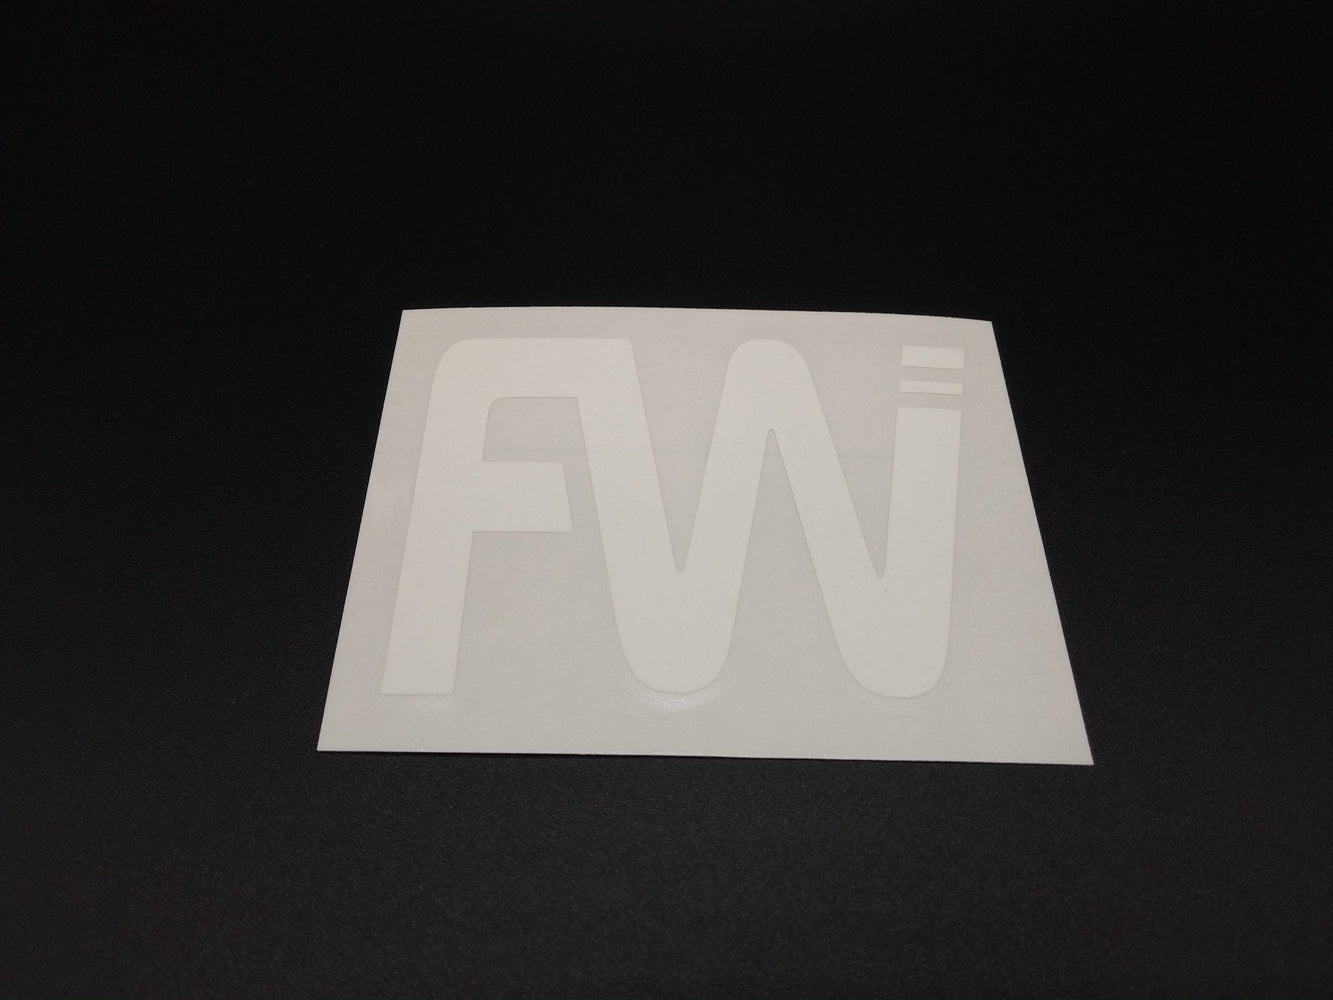 Decal Sport Small - FIXWELL